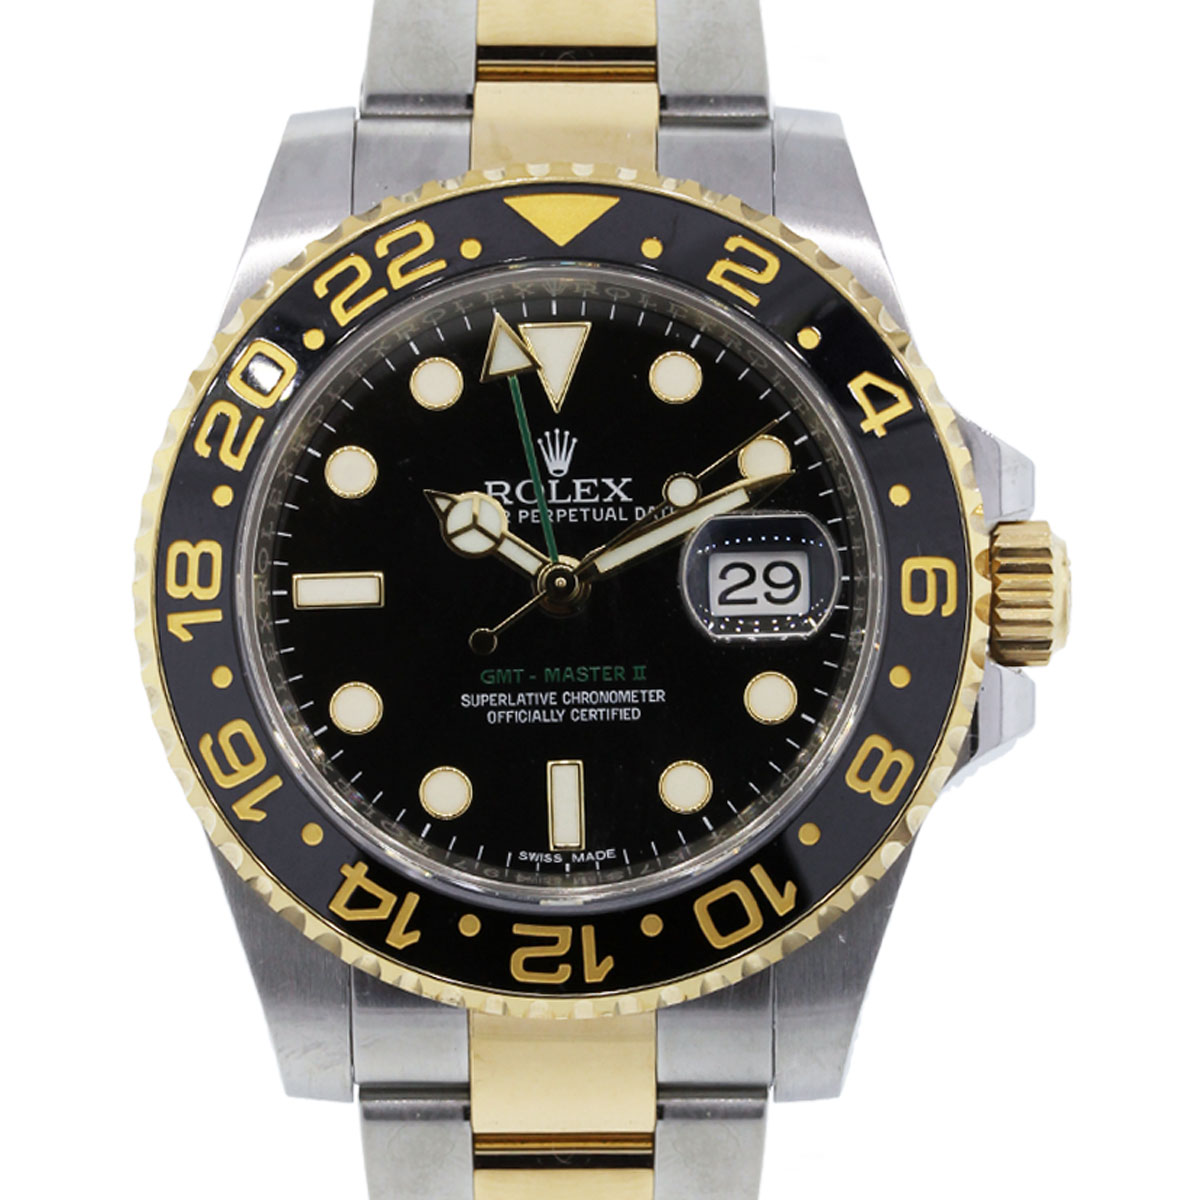 Rolex 116713 gmt master ii two tone black dial watch for Rolex gmt master